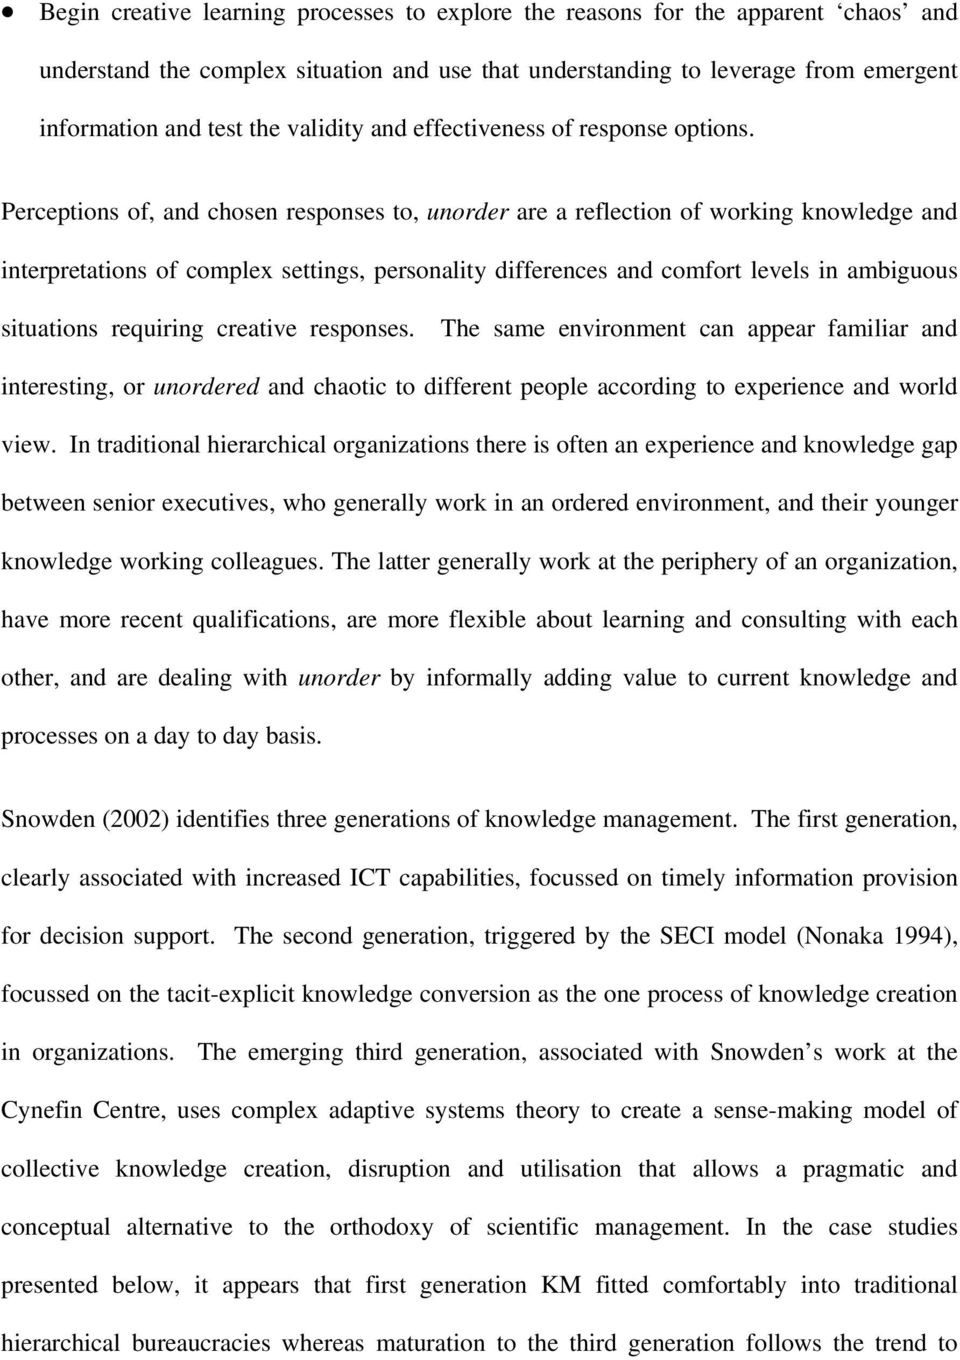 Perceptions of, and chosen responses to, unorder are a reflection of working knowledge and interpretations of complex settings, personality differences and comfort levels in ambiguous situations